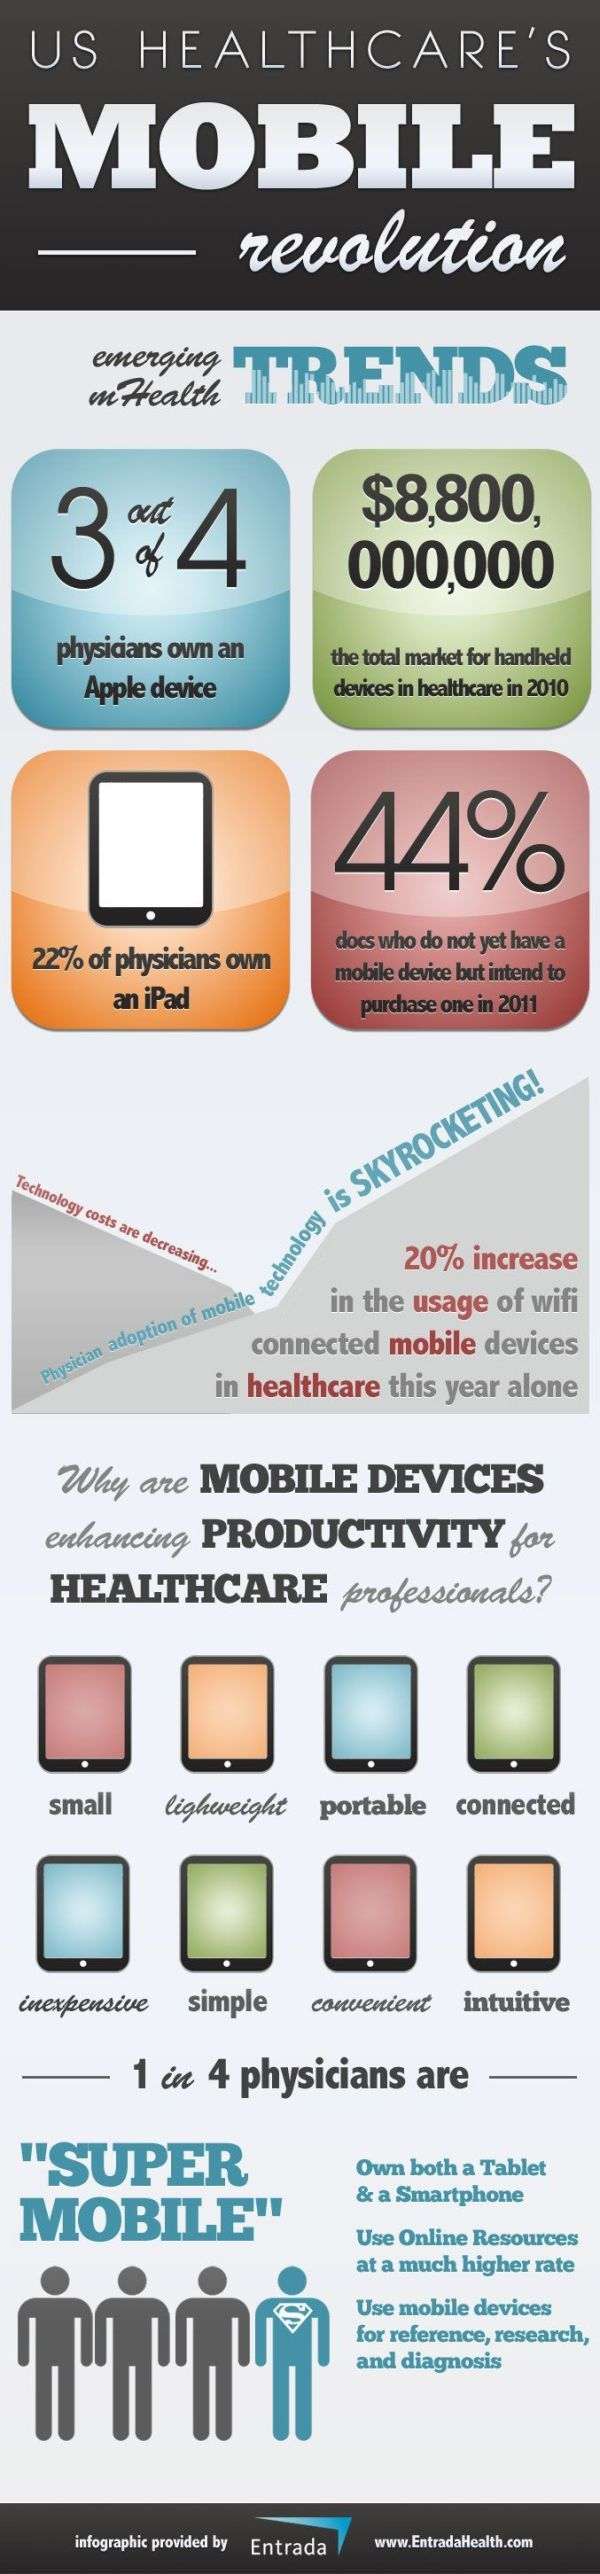 """Is your physician """"super mobile""""?    According to this infographic, one in four physicians owns a tablet and a smartphone, use online resources at a much higher rate, and use their mobile devices for references, research, and even diagnosis.    Handheld devices have become a million dollar industry for health care professionals—in 2010, the total market for handheld devices in health care reached $8,800,000."""